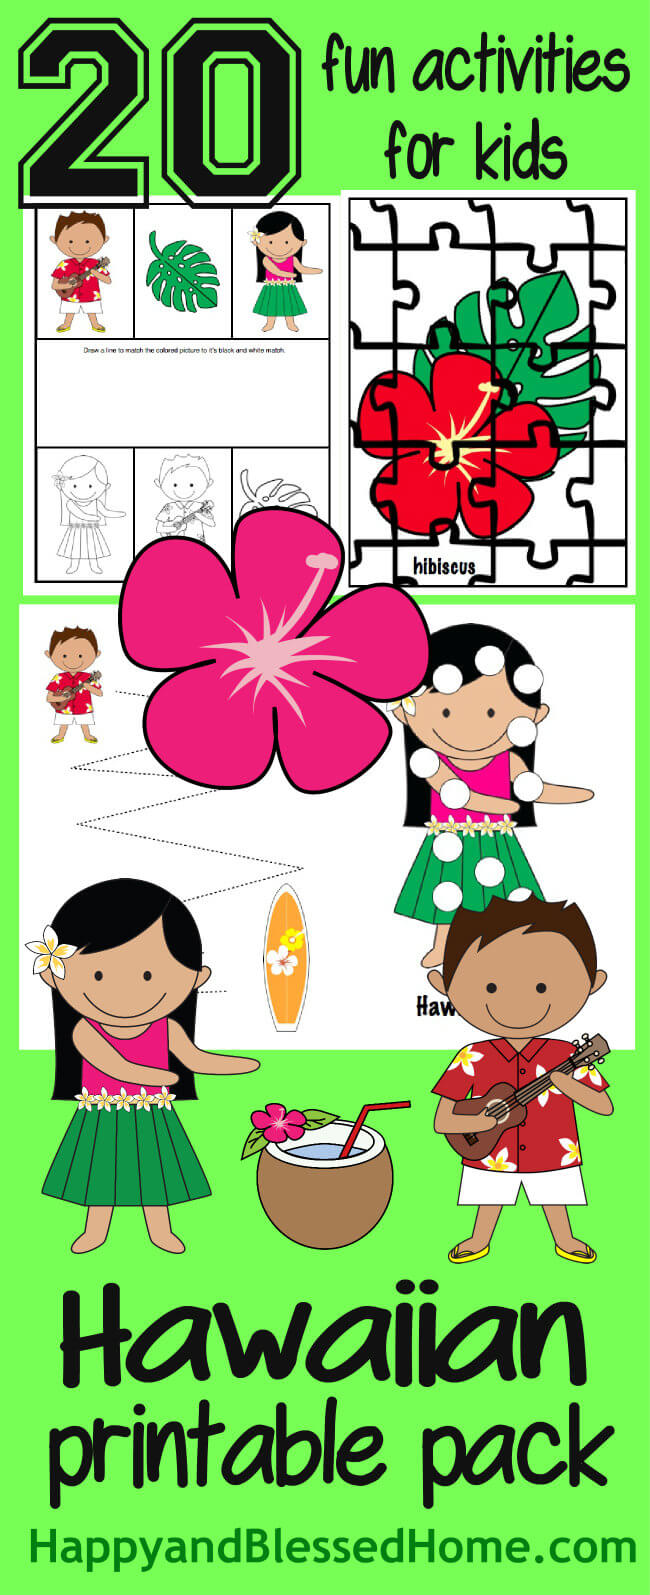 FREE-Hawaiian-Printable-Pack-with-20-fun-activities-for-kids-from-HappyandBlessedHome.com_